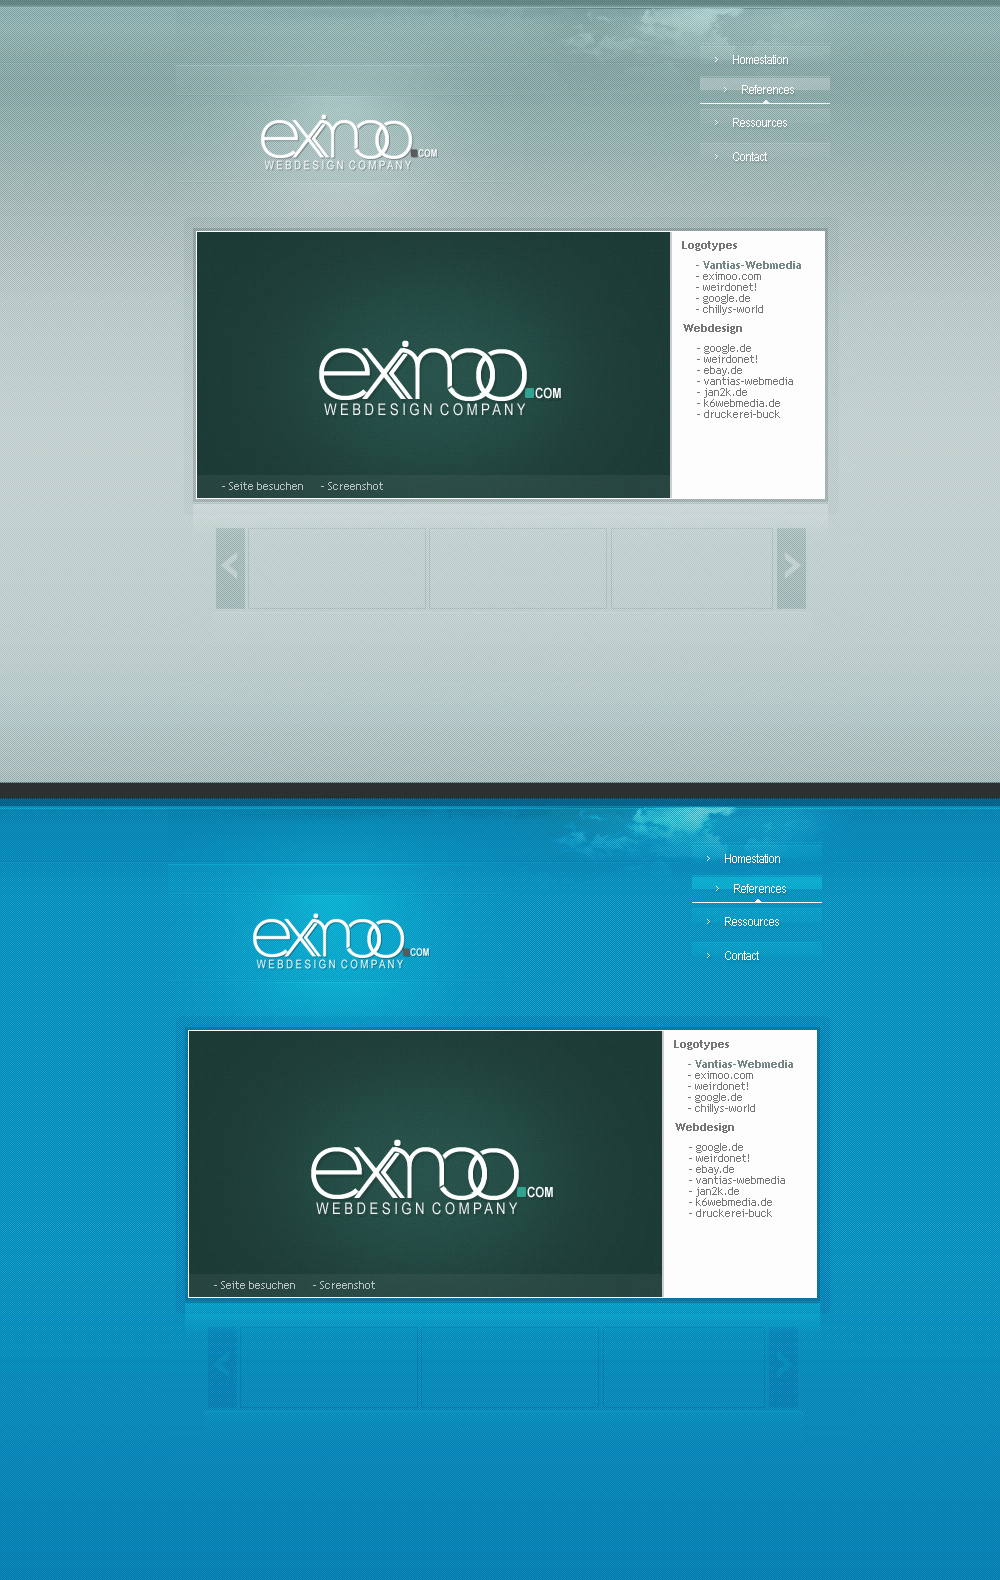 eximoo com by painsworld by designerscouch